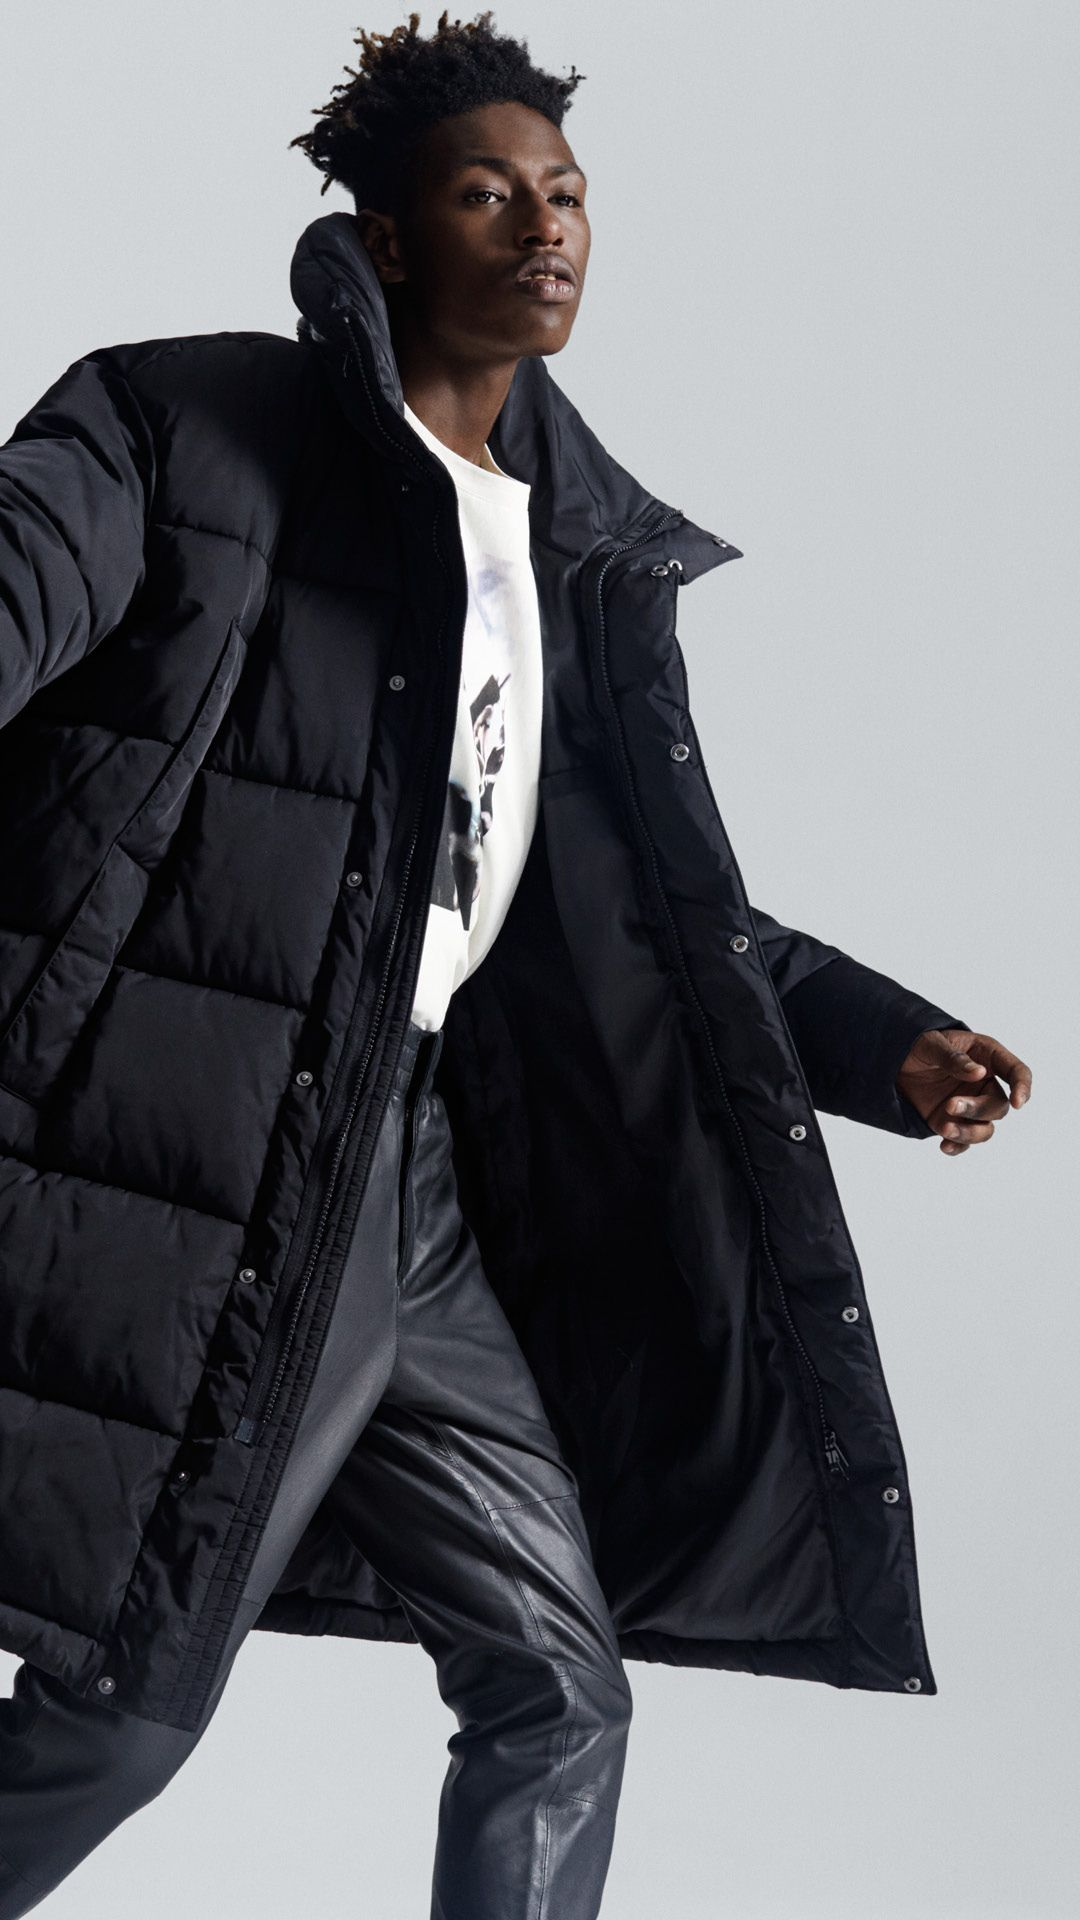 Menswear Gets A Renewal With Oversized Puffer Jackets And Slick Streetwear Styles H M Oversized Puffer Jacket Puffer Jacket Outfit Puffer Jacket Outfit Men [ 1920 x 1080 Pixel ]